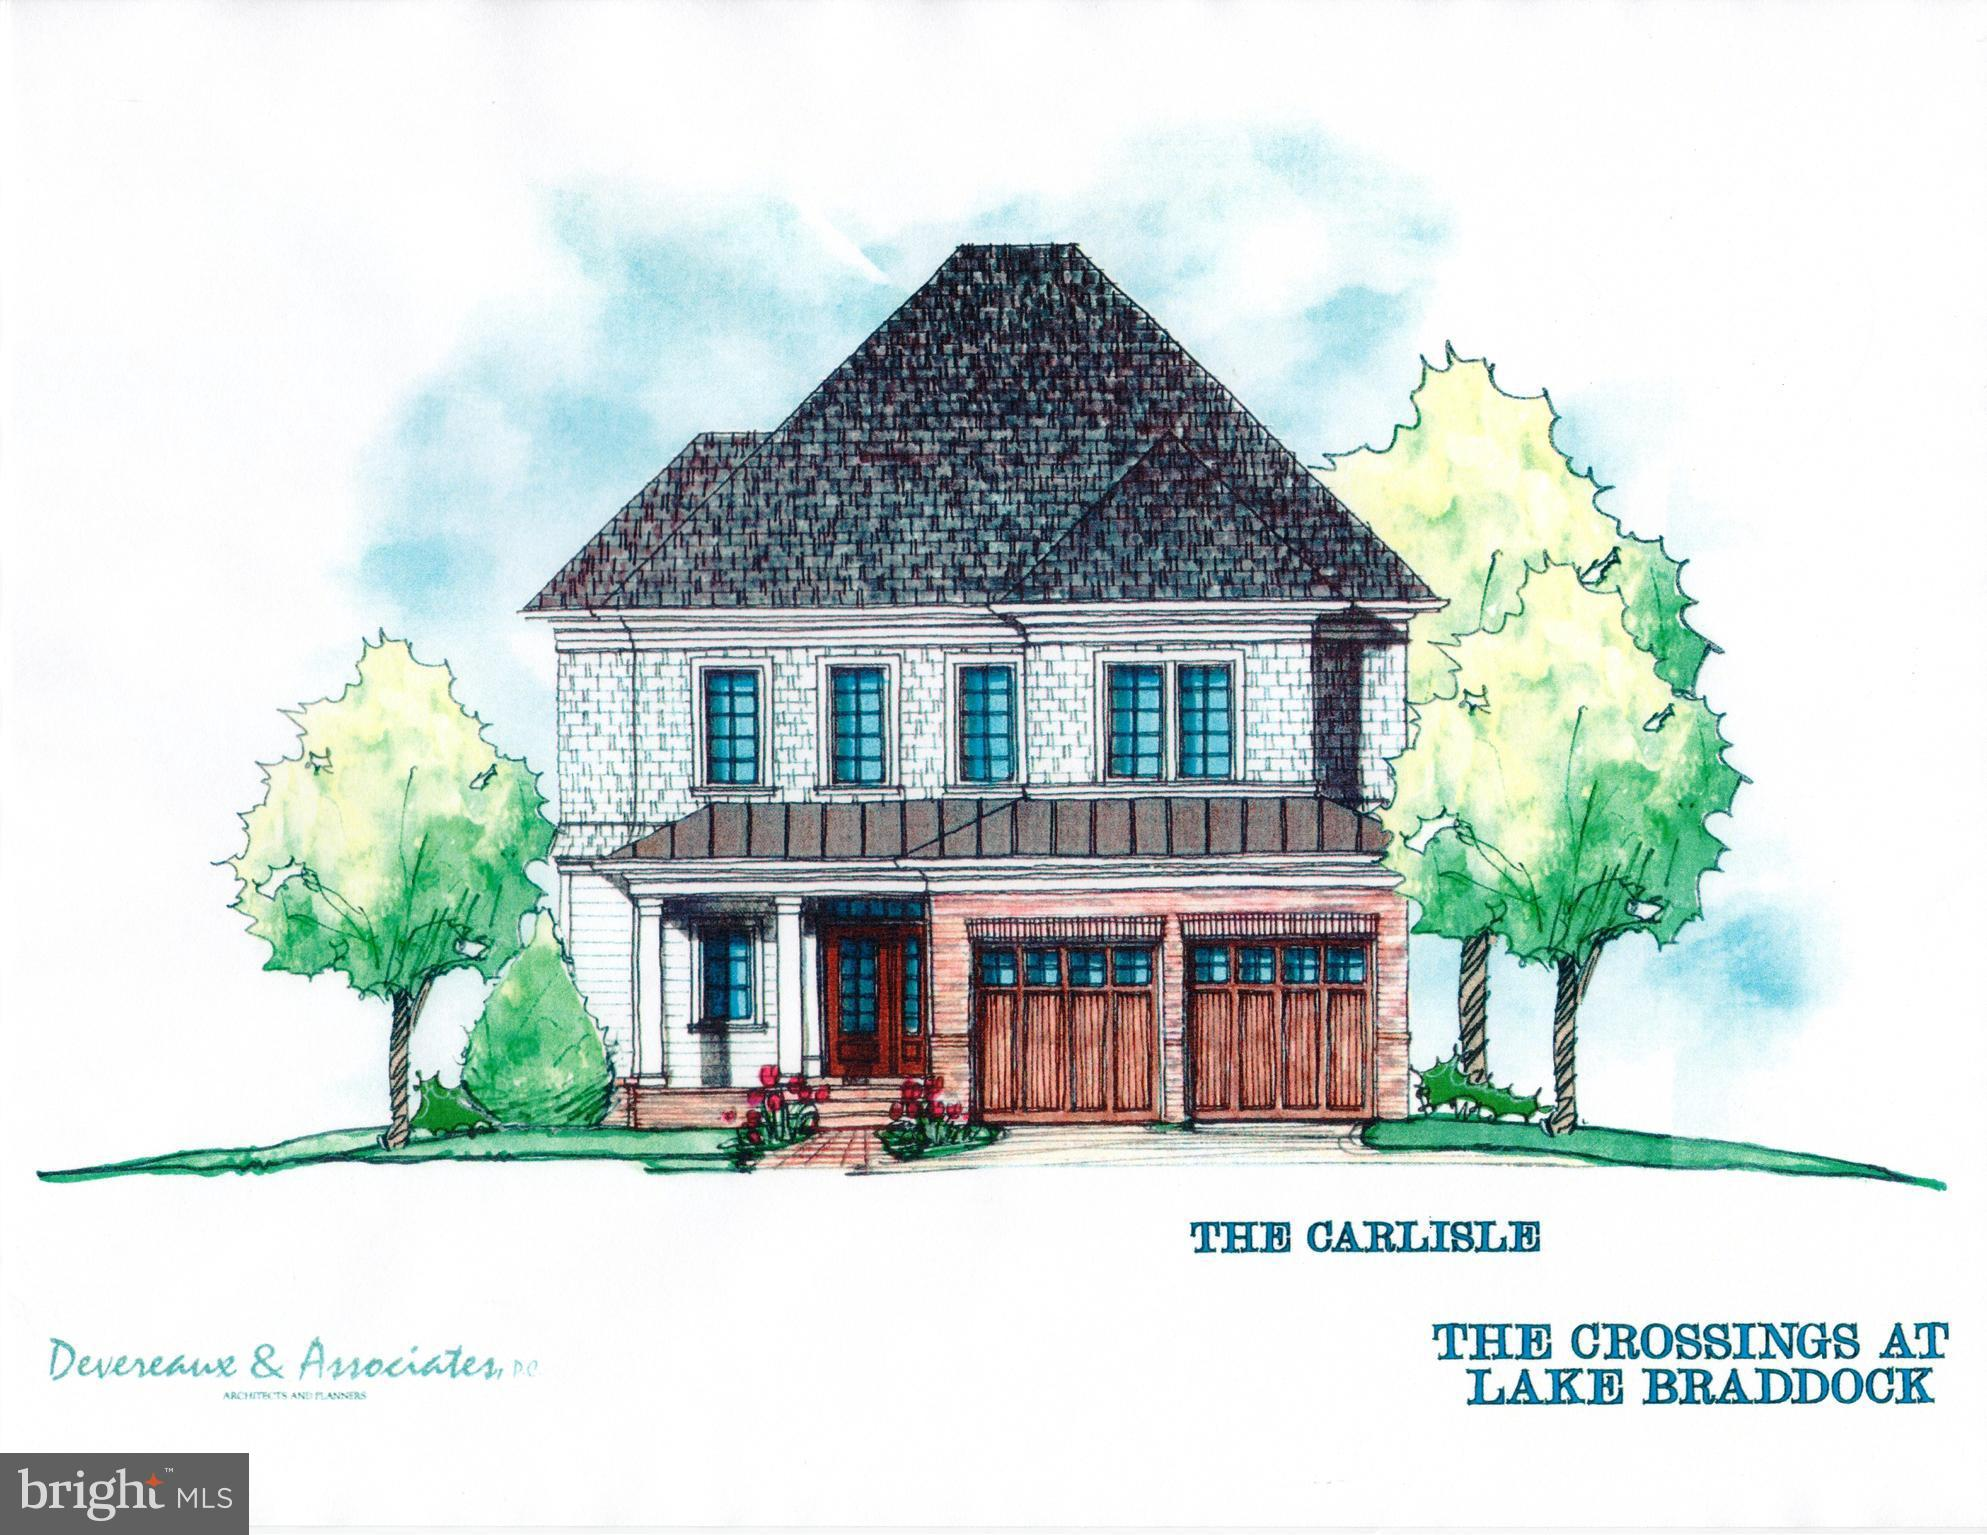 The Carlisle,To Be Built with Enduring Quality and Timeless Appeal, 4300+ Sq. Ft., Solid Hardwoods, Hardie Siding, HE-HVAC, Lo-E Casements, Kitchen Island, Deck, Location, Location, Location, EZ access, 495,395, HOT, VRE, Metro Bus, Bike/Hike Trails, Shop, Eat, Schools~walking distance, 3 Regional Malls w/i 15 Minutes, SimpsonBurke-Residential, Families Love Living on Tunwell, Ask Our Homeowners.